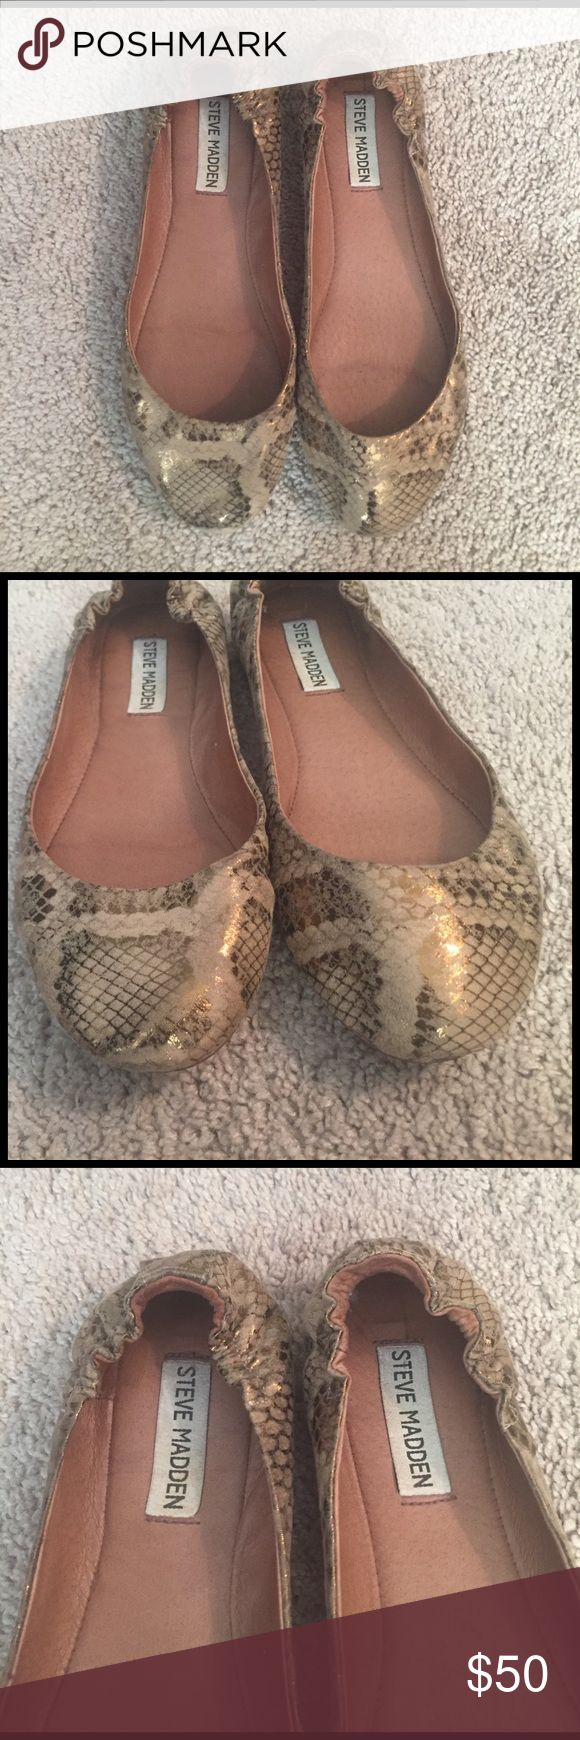 Gold Foil Snake Print Steve Madden Flats Size 8 Gold Foil Snake Print Steve Madden Flats Size 8. Used but still in good condition. Perfect to dress up any casual look! Please feel feee to ask any questions! Steve Madden Shoes Flats & Loafers